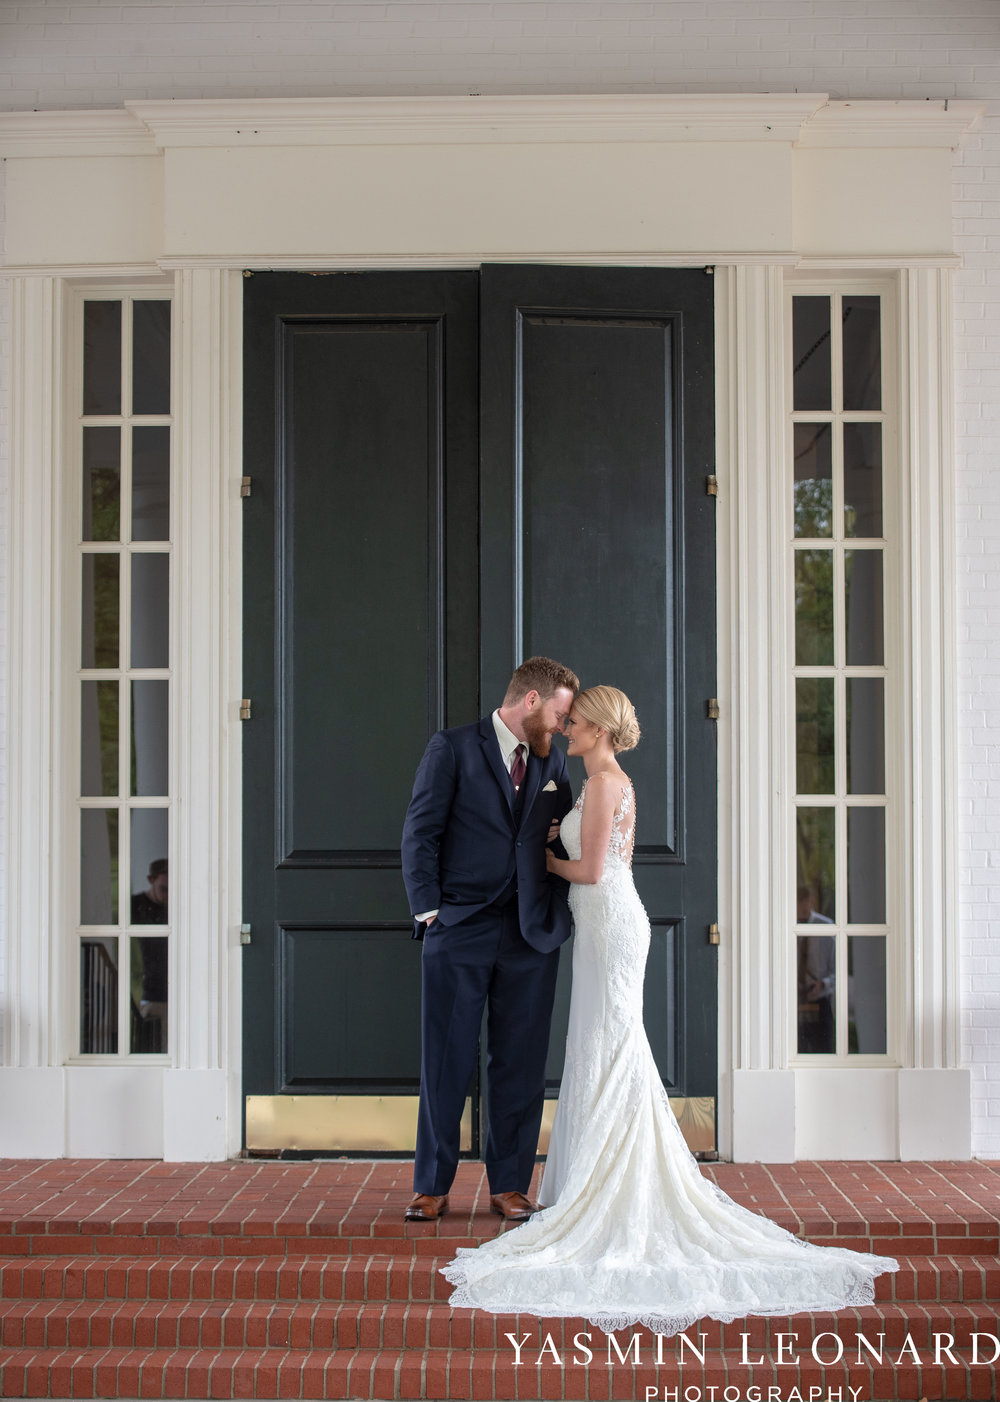 High Point Country Club - High Point Weddings - Emerywood Country Club - High Point Wedding Venues - NC Venues - NC Weddings - NC Wedding Photographers - Yasmin Leonard Photography-10.jpg